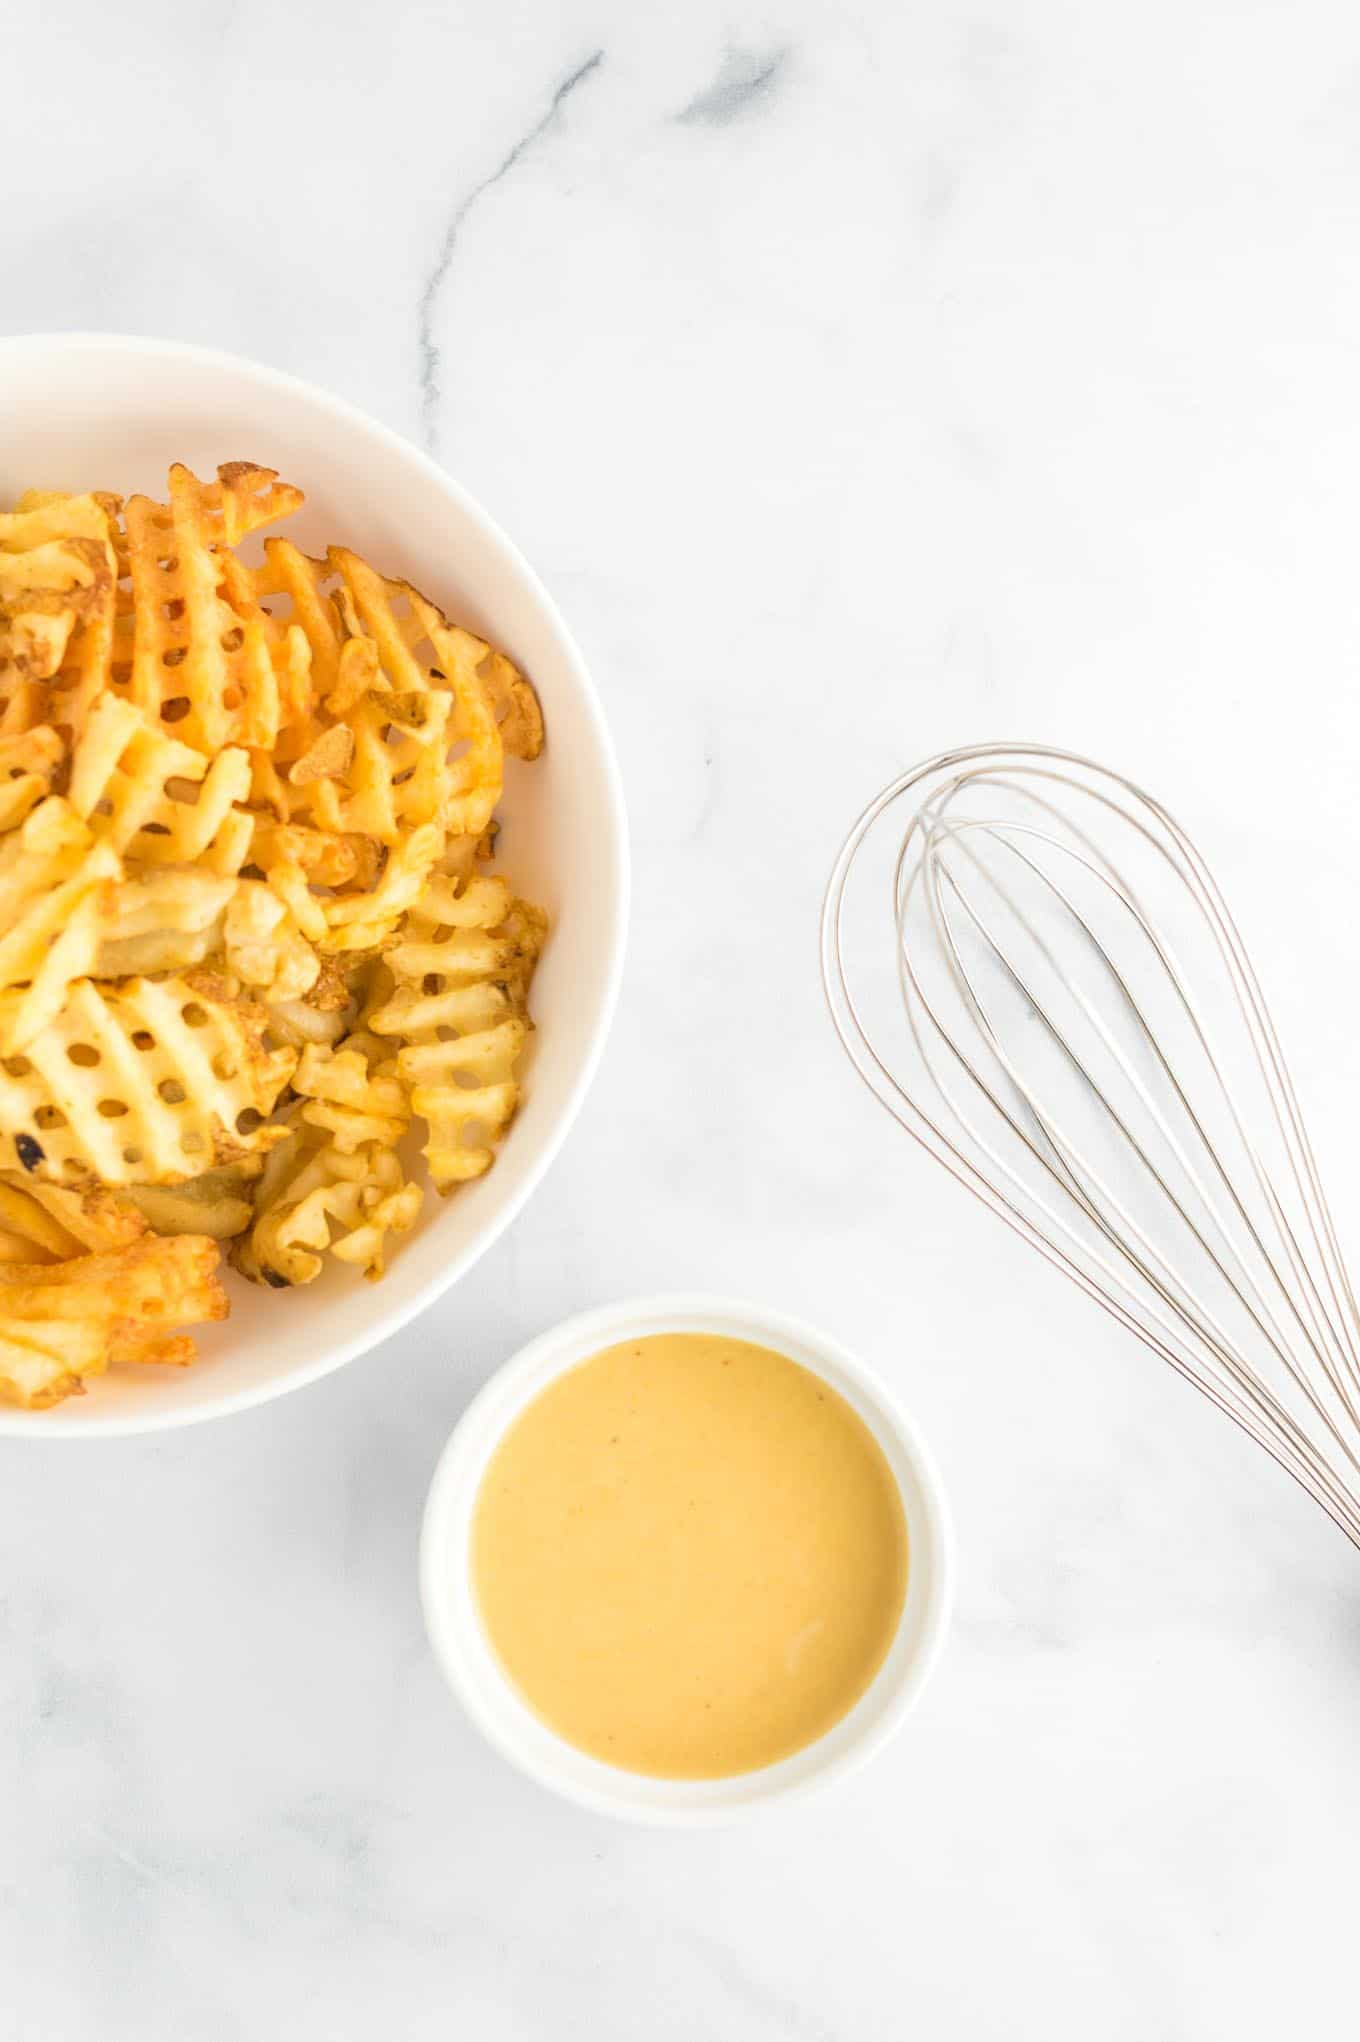 sauce in a white ramekin with fries in a bowl and a whisk